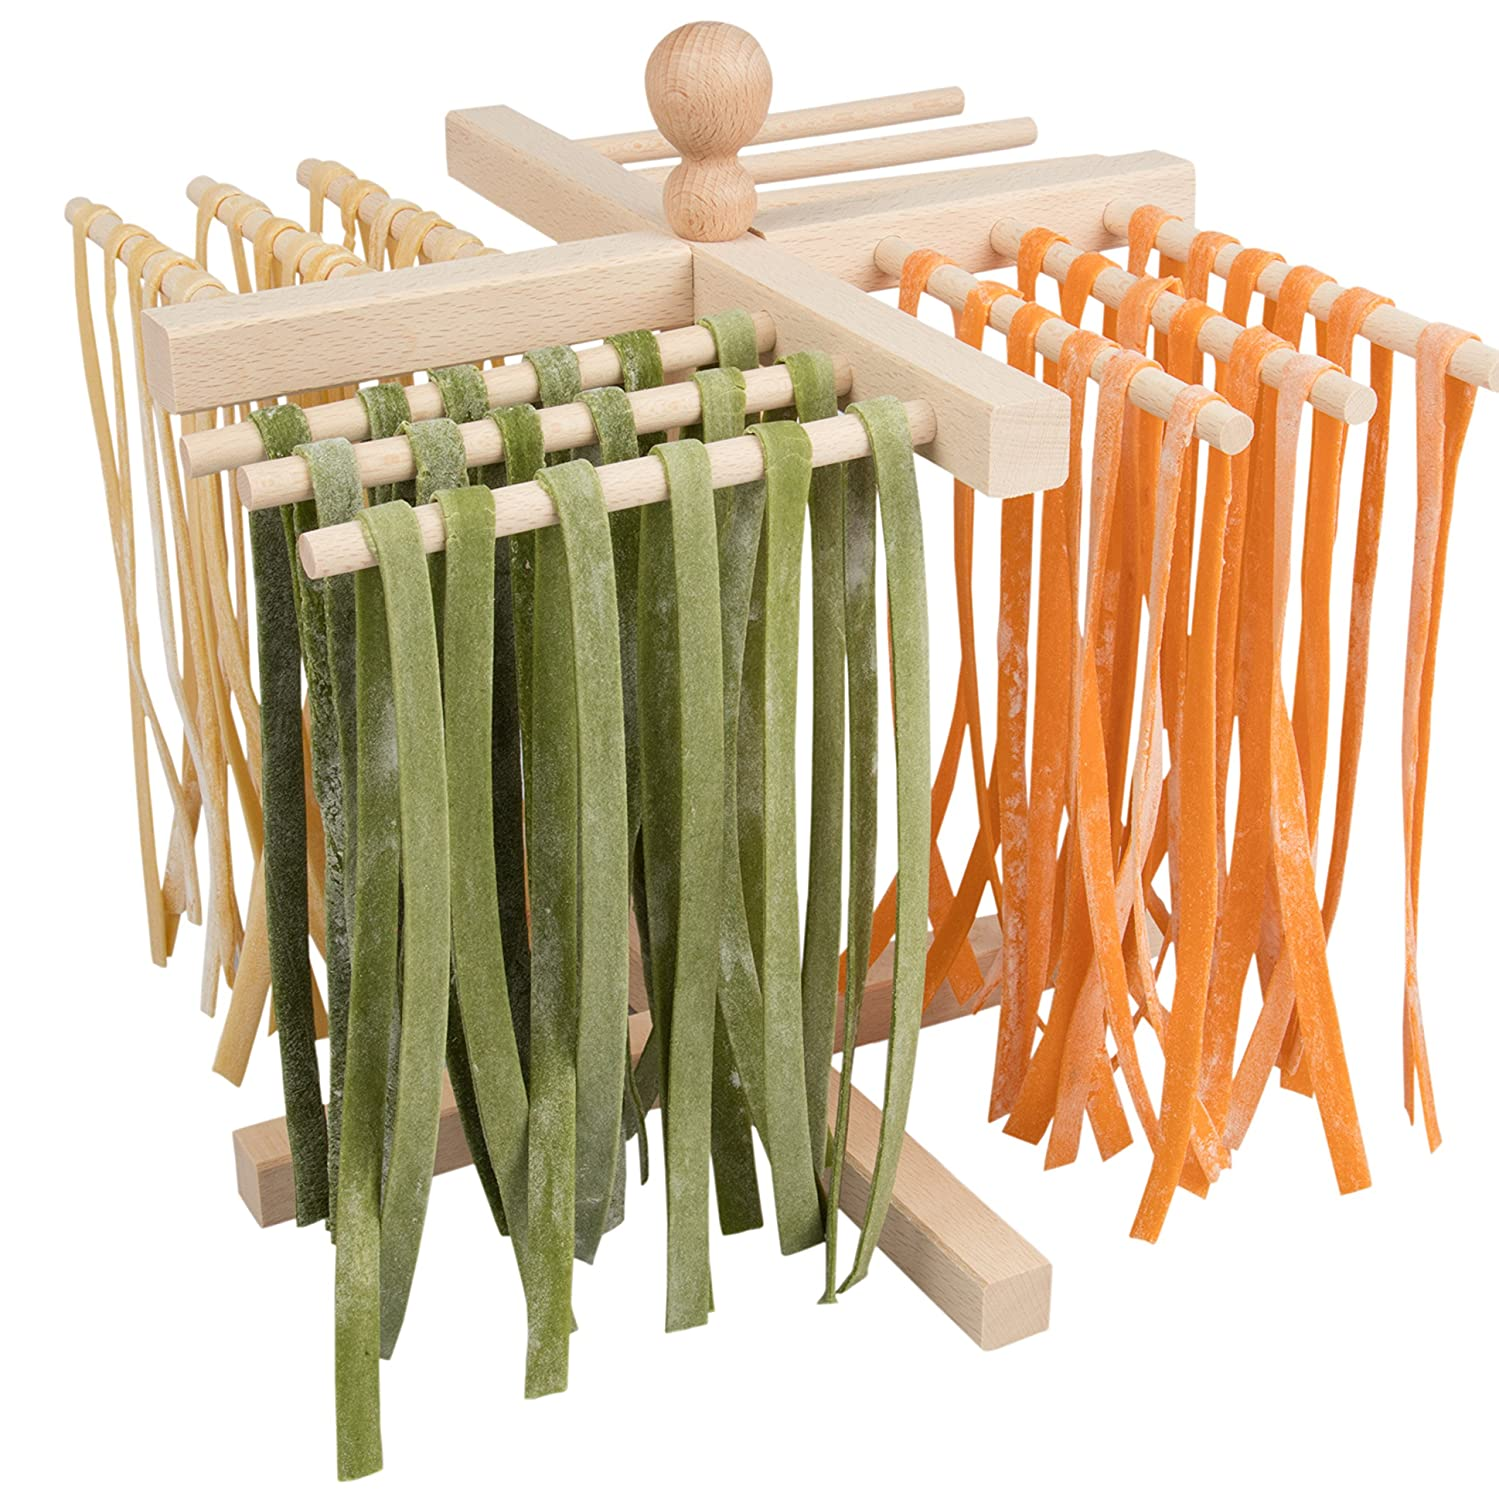 GDS Imperia Italian Wooden Pasta Drying Stand Kitchen Craft PASTASTAND